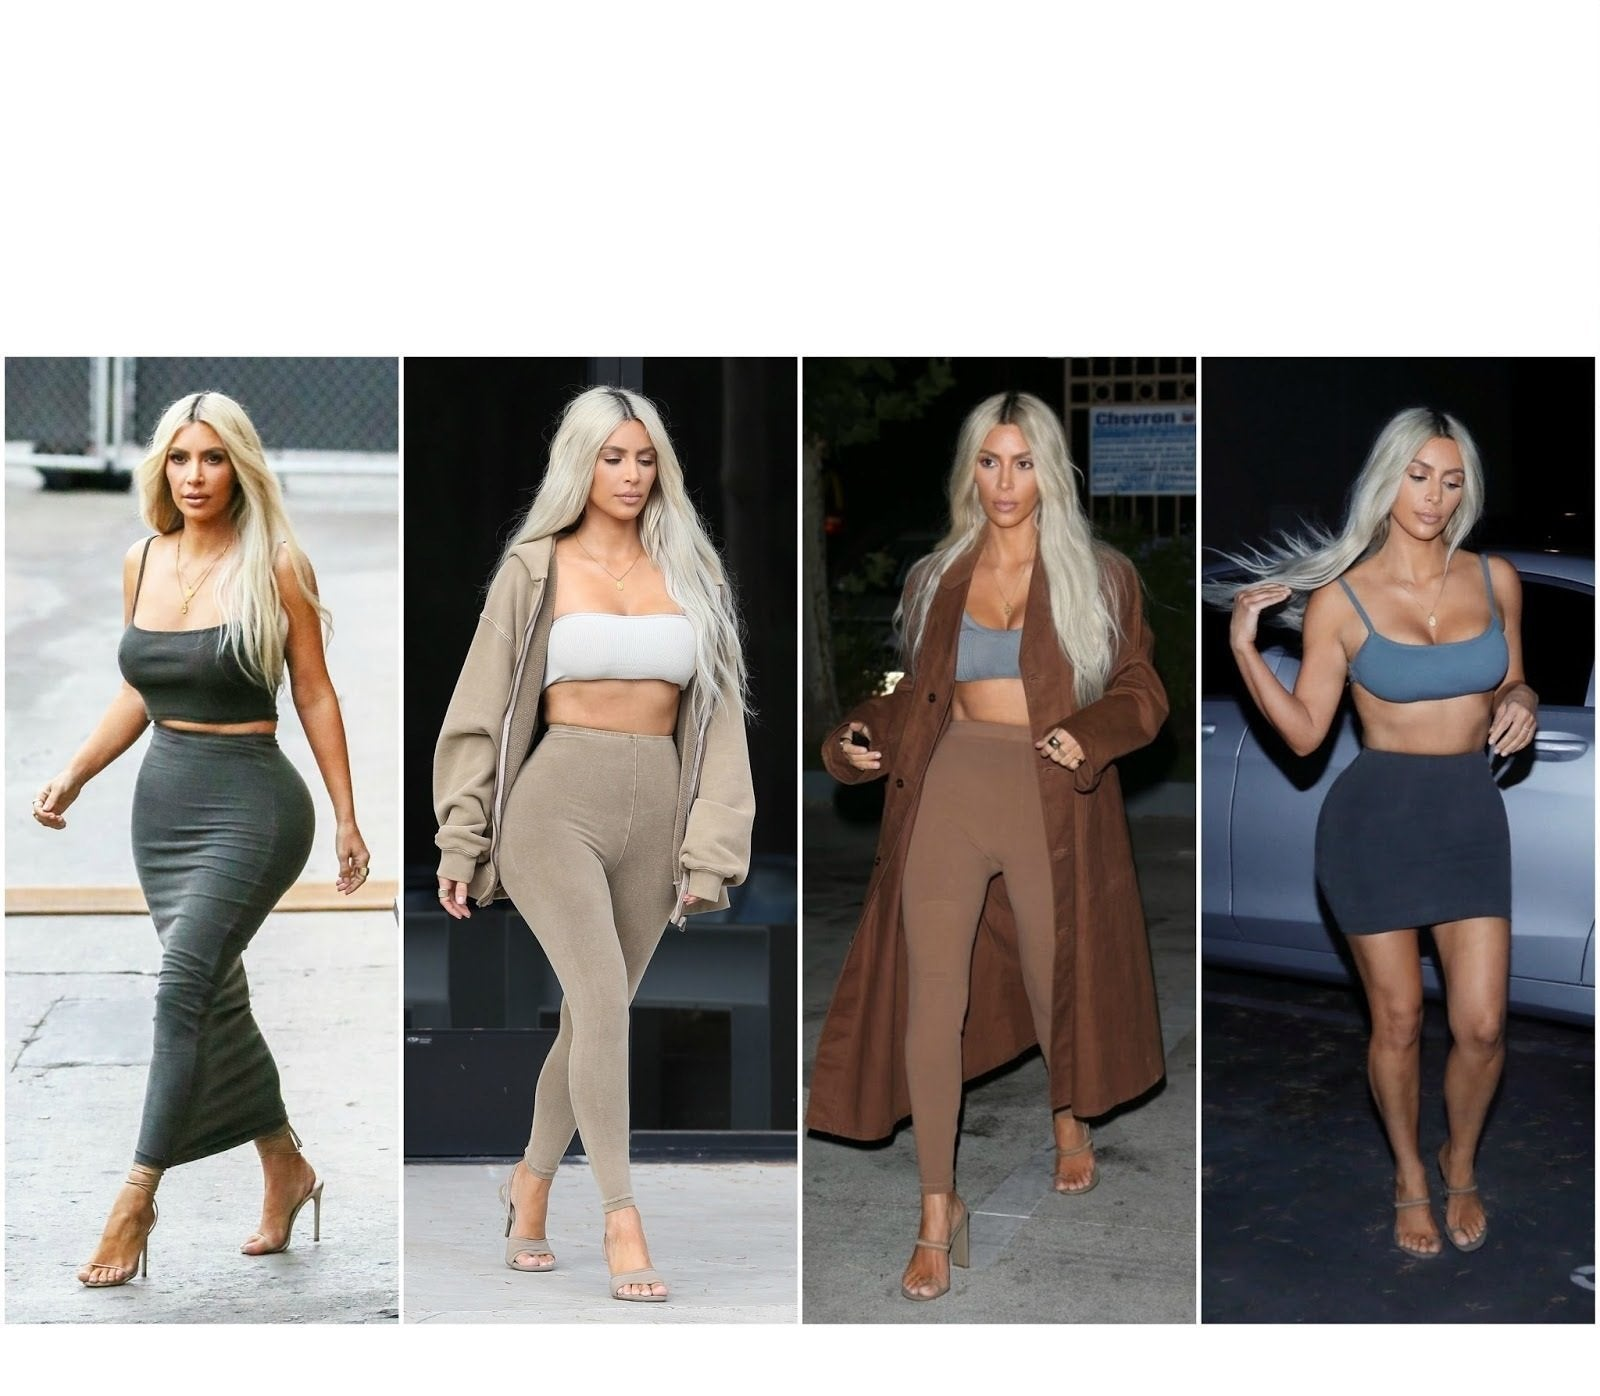 Kim Kardashian May Have Just Committed A Major Fashion Faux Pas